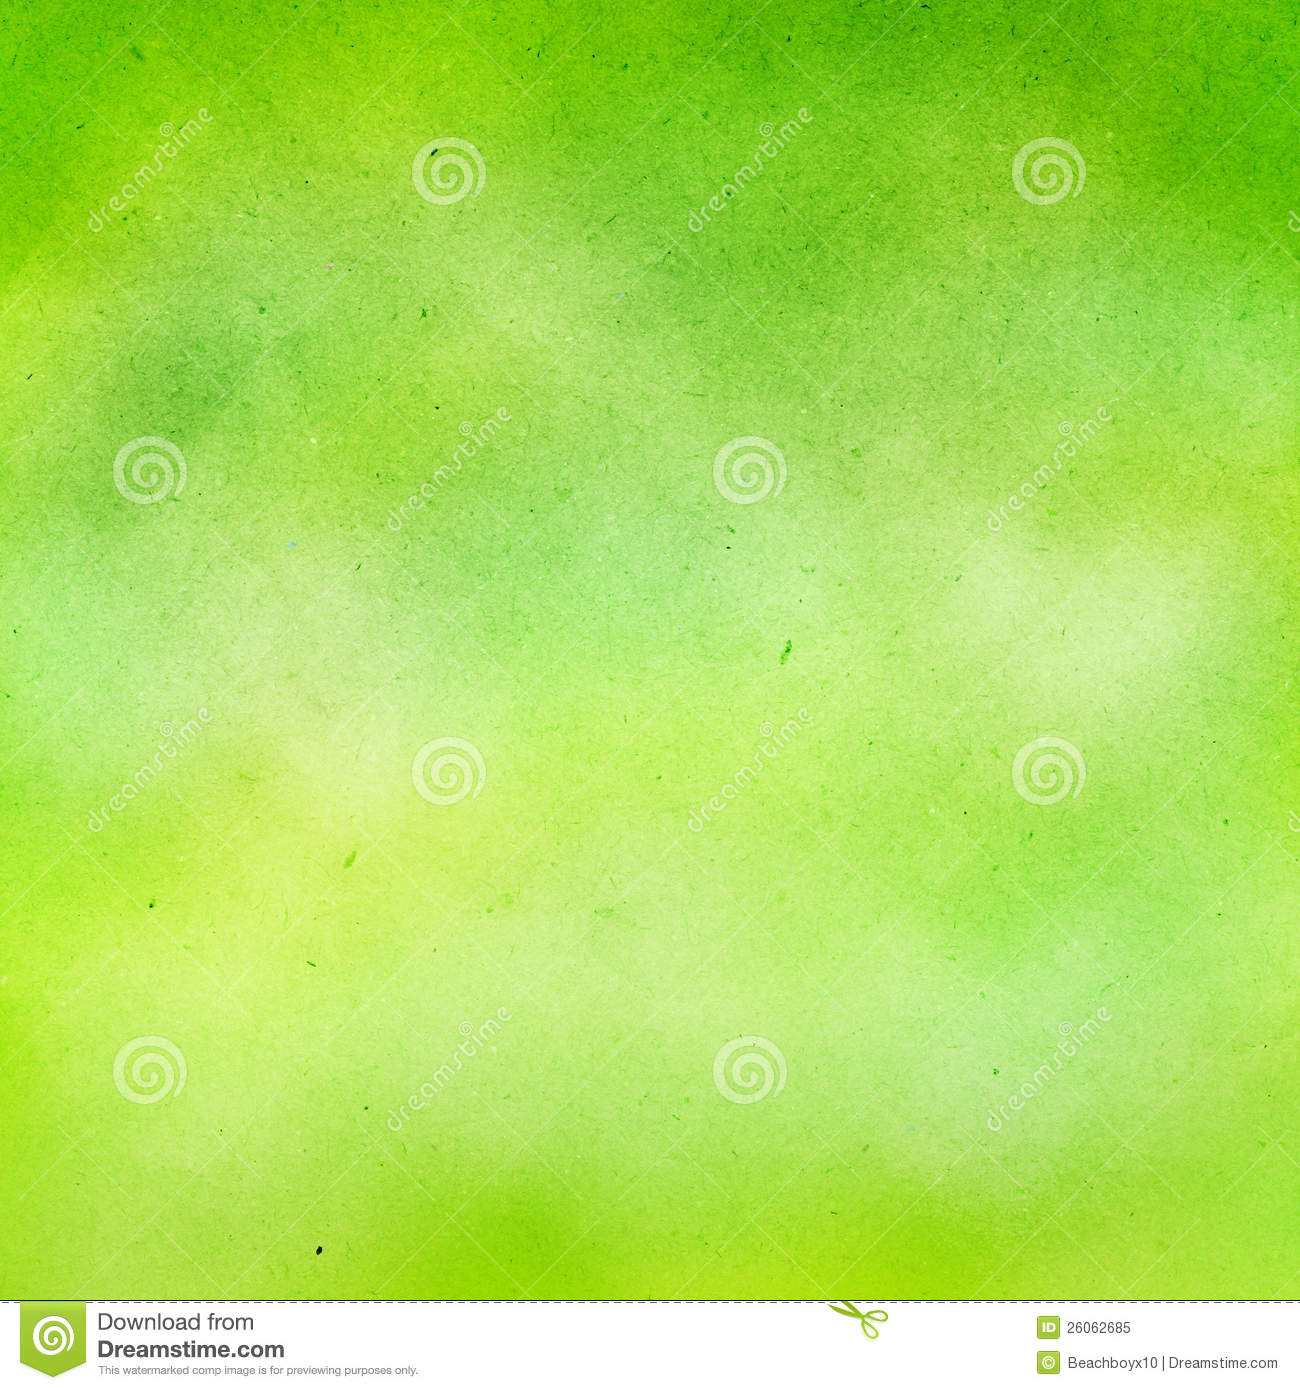 Paint texture paints background download photo green paint texture - Green Watercolor Background Royalty Free Stock Photo